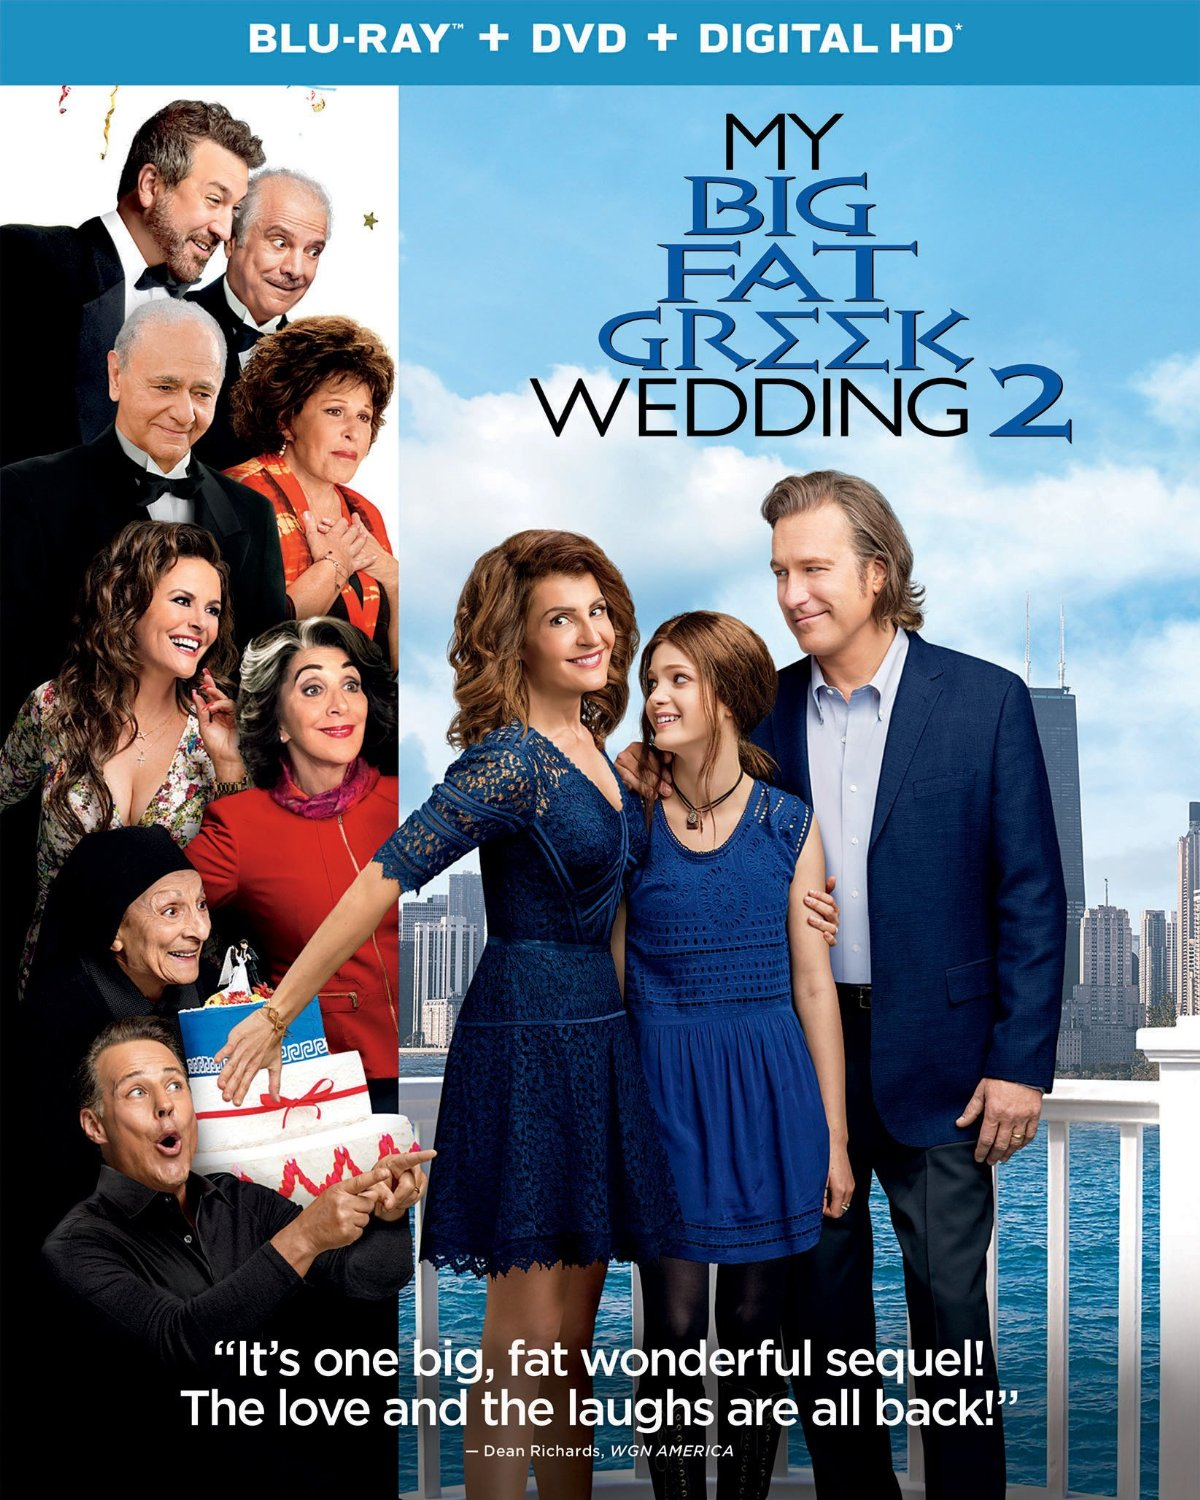 My Big Fat Greek Wedding [Movie] - My Big Fat Greek Wedding 2